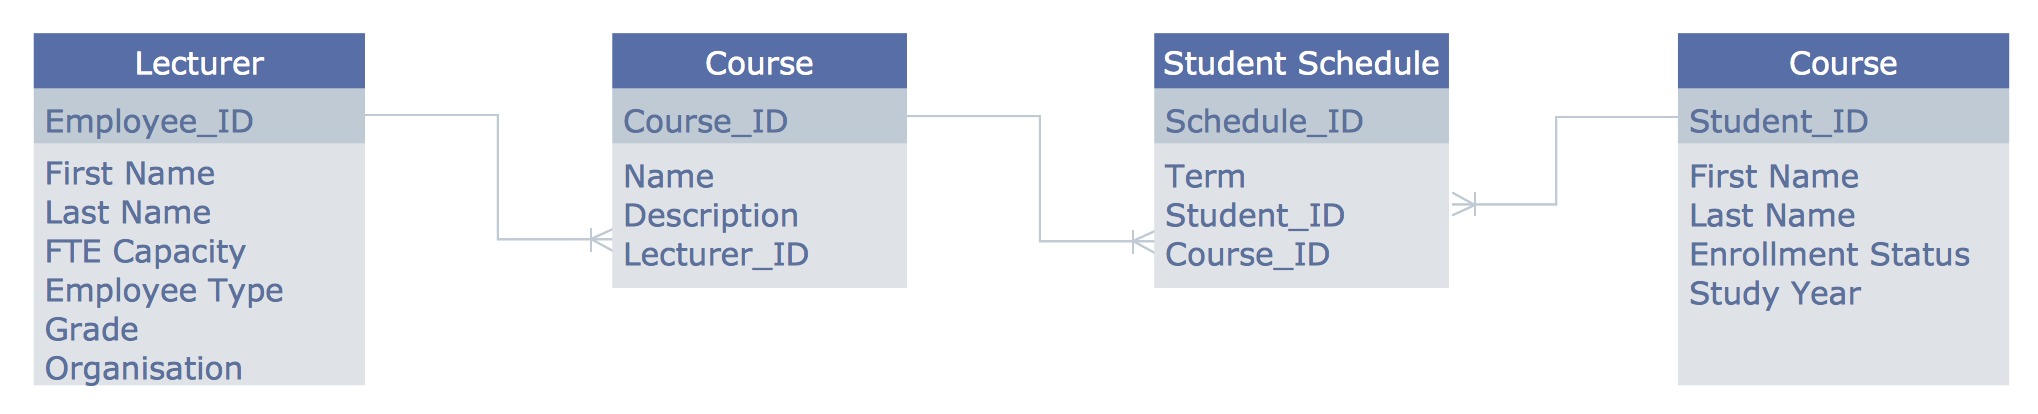 Entity Relationship Diagram (Erd) Solution | Conceptdraw